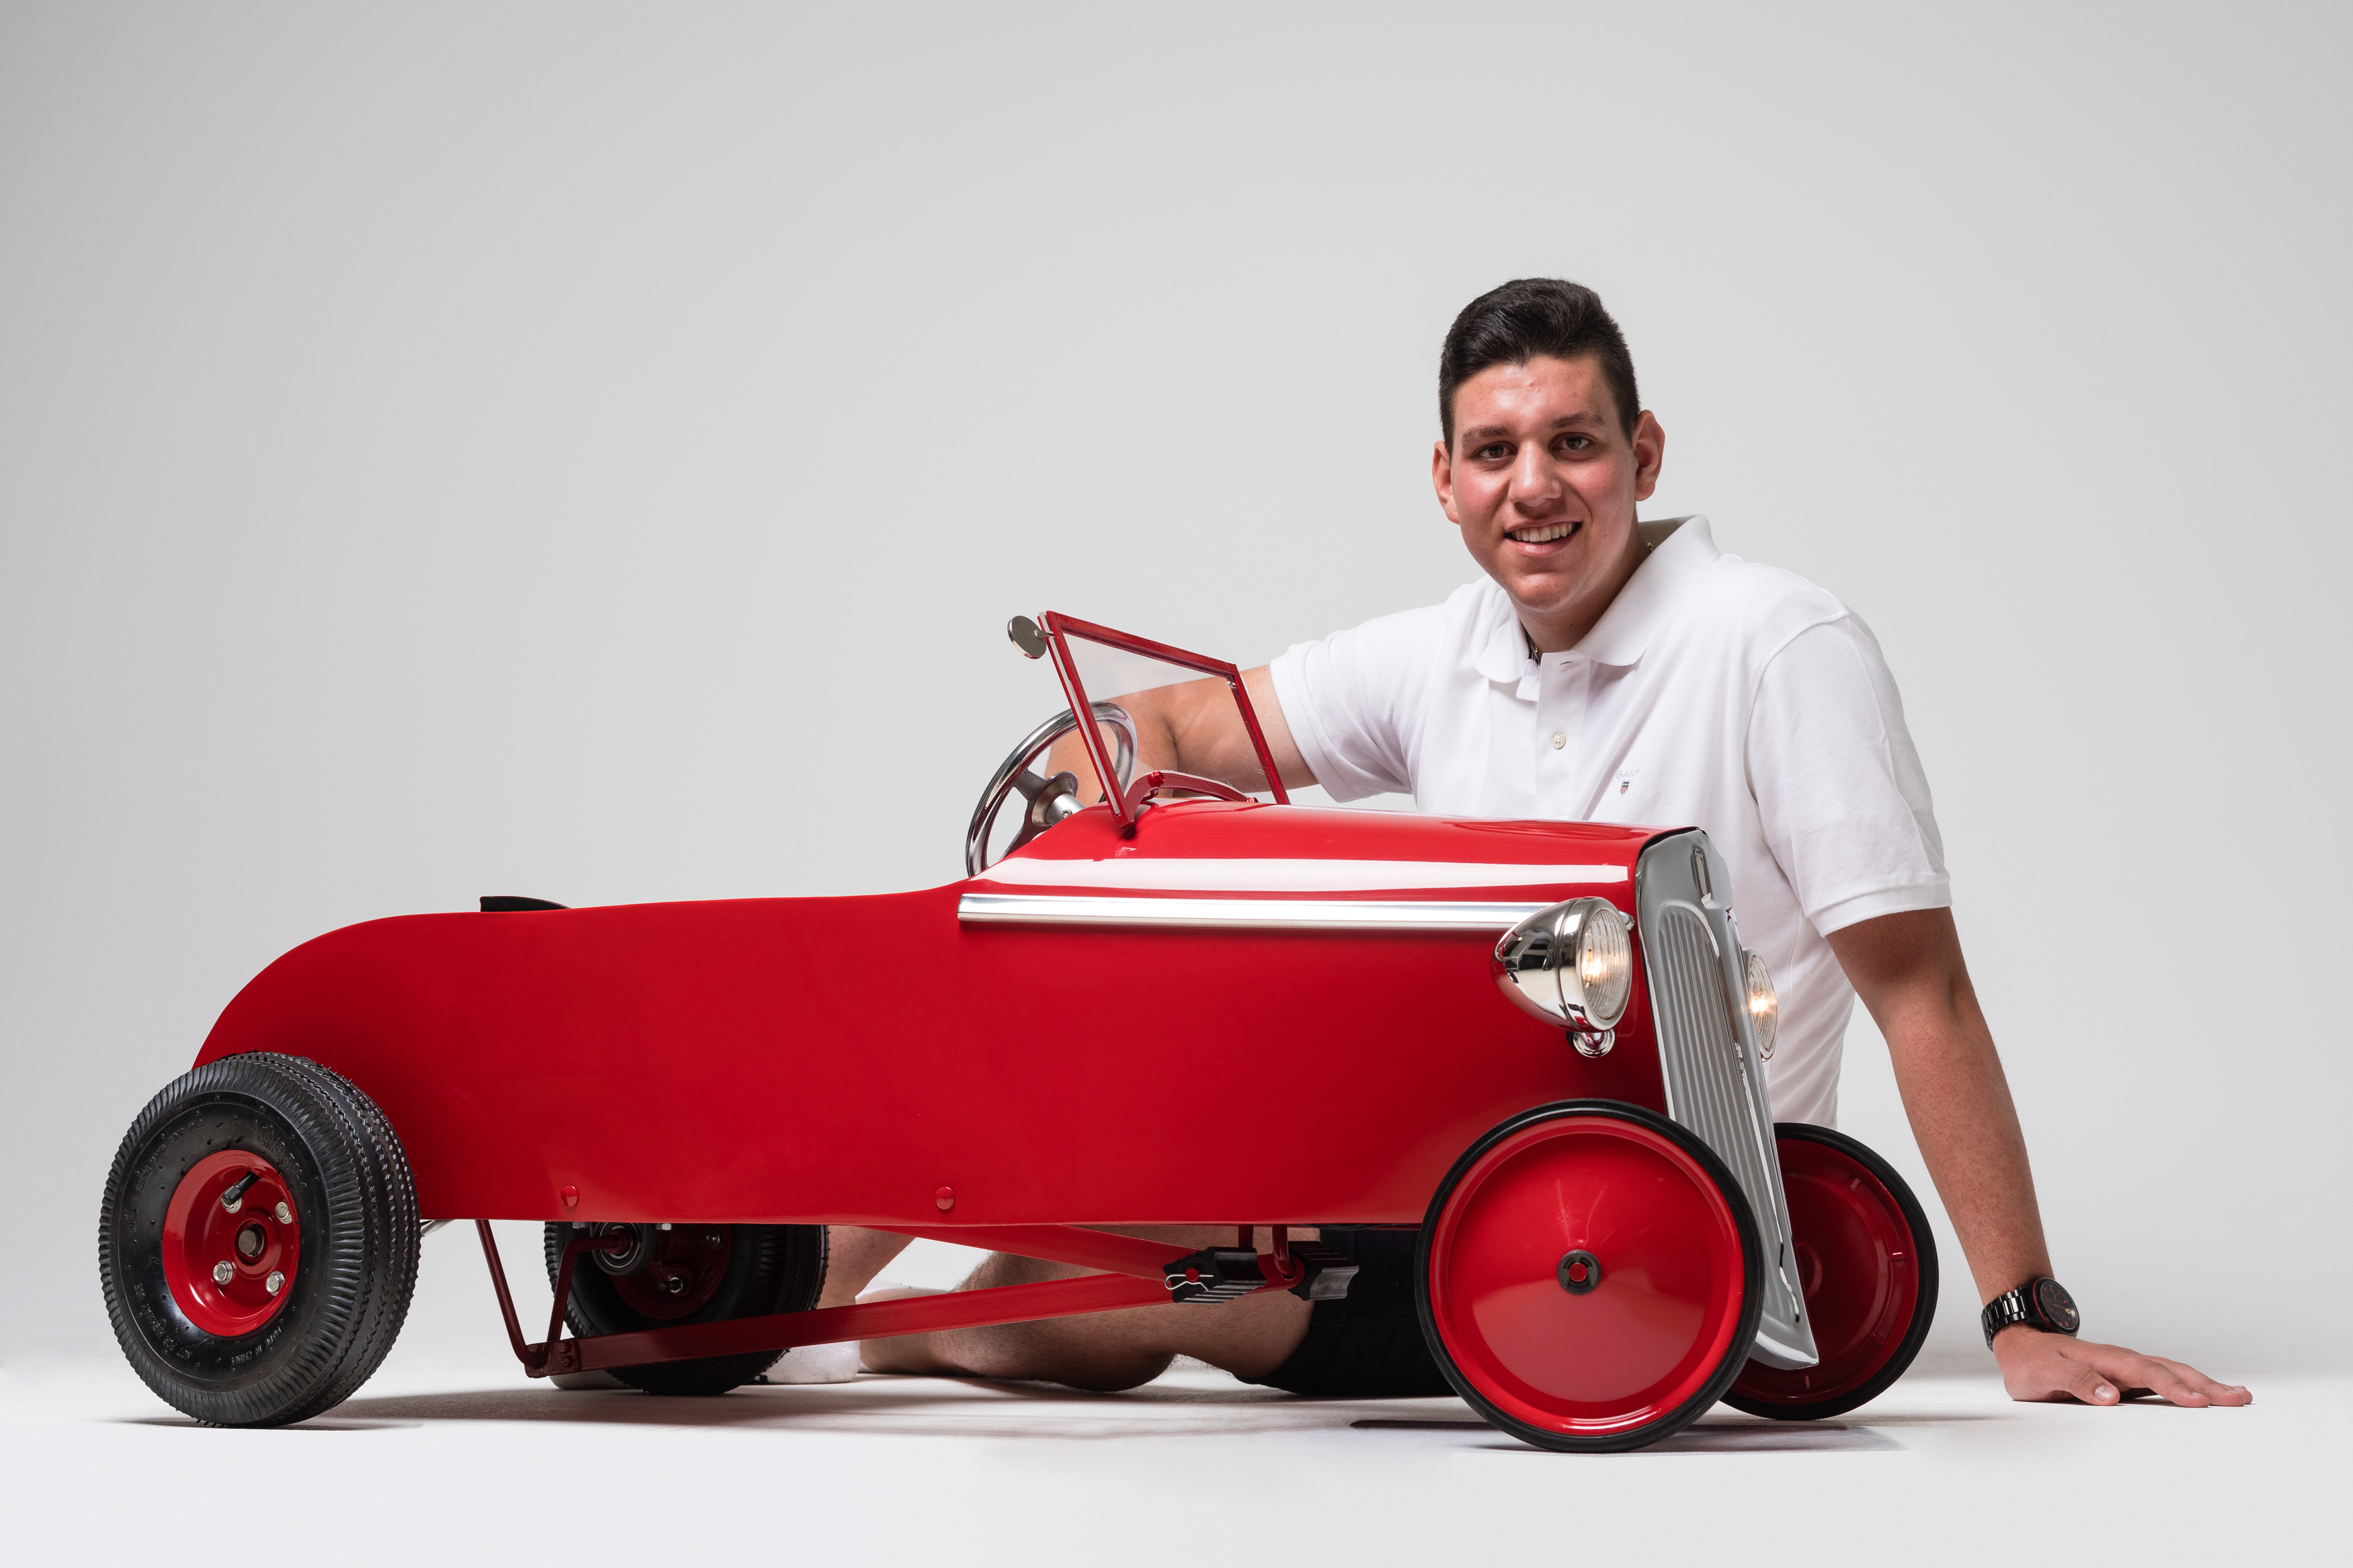 A young man sitting on the floor behind a small, bright red pedal car.